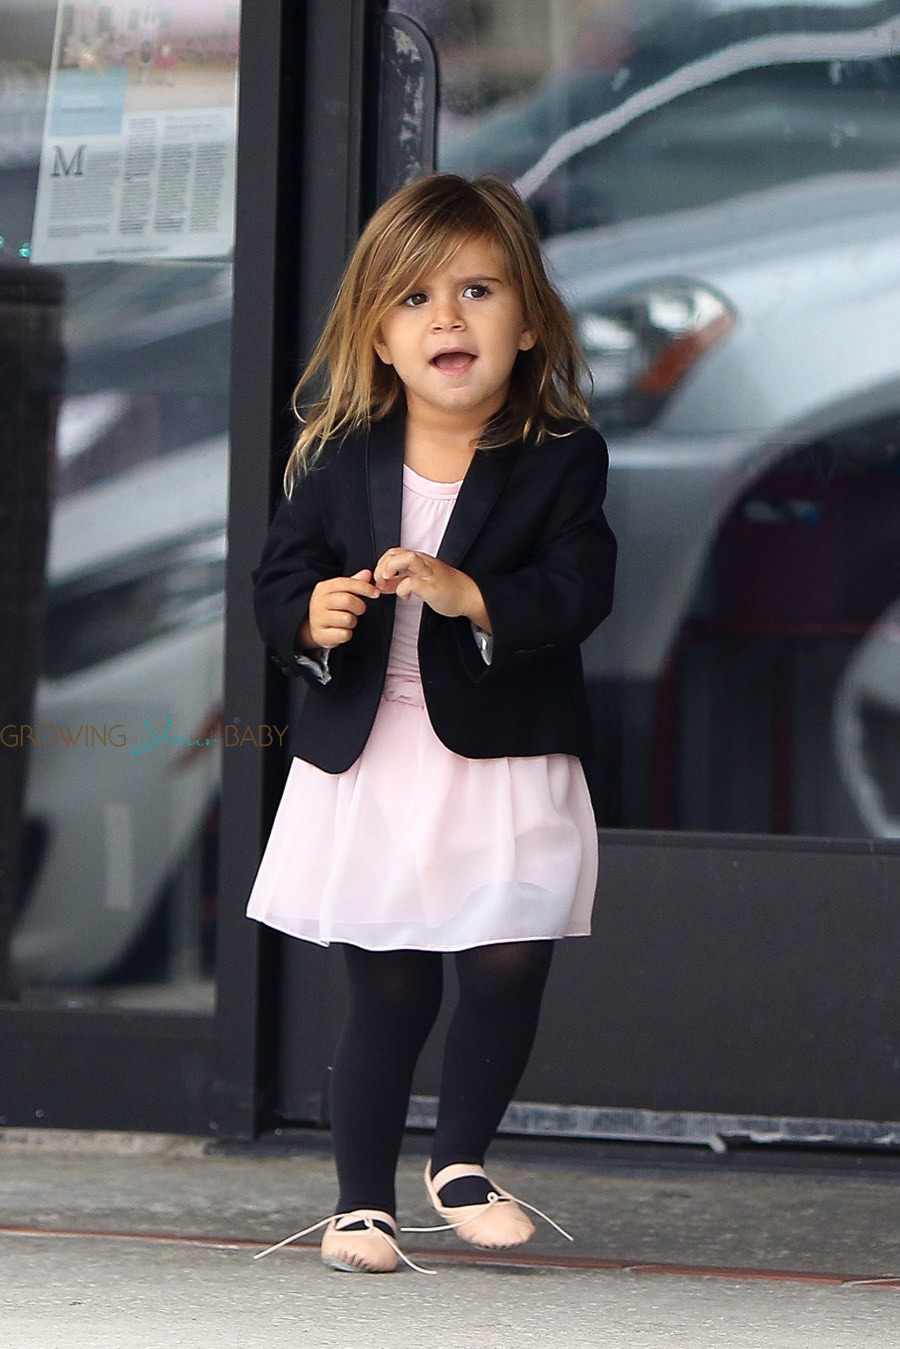 Newborn Baby Car Seat Test Penelope Disick At Dance Class With Cousin North Growing